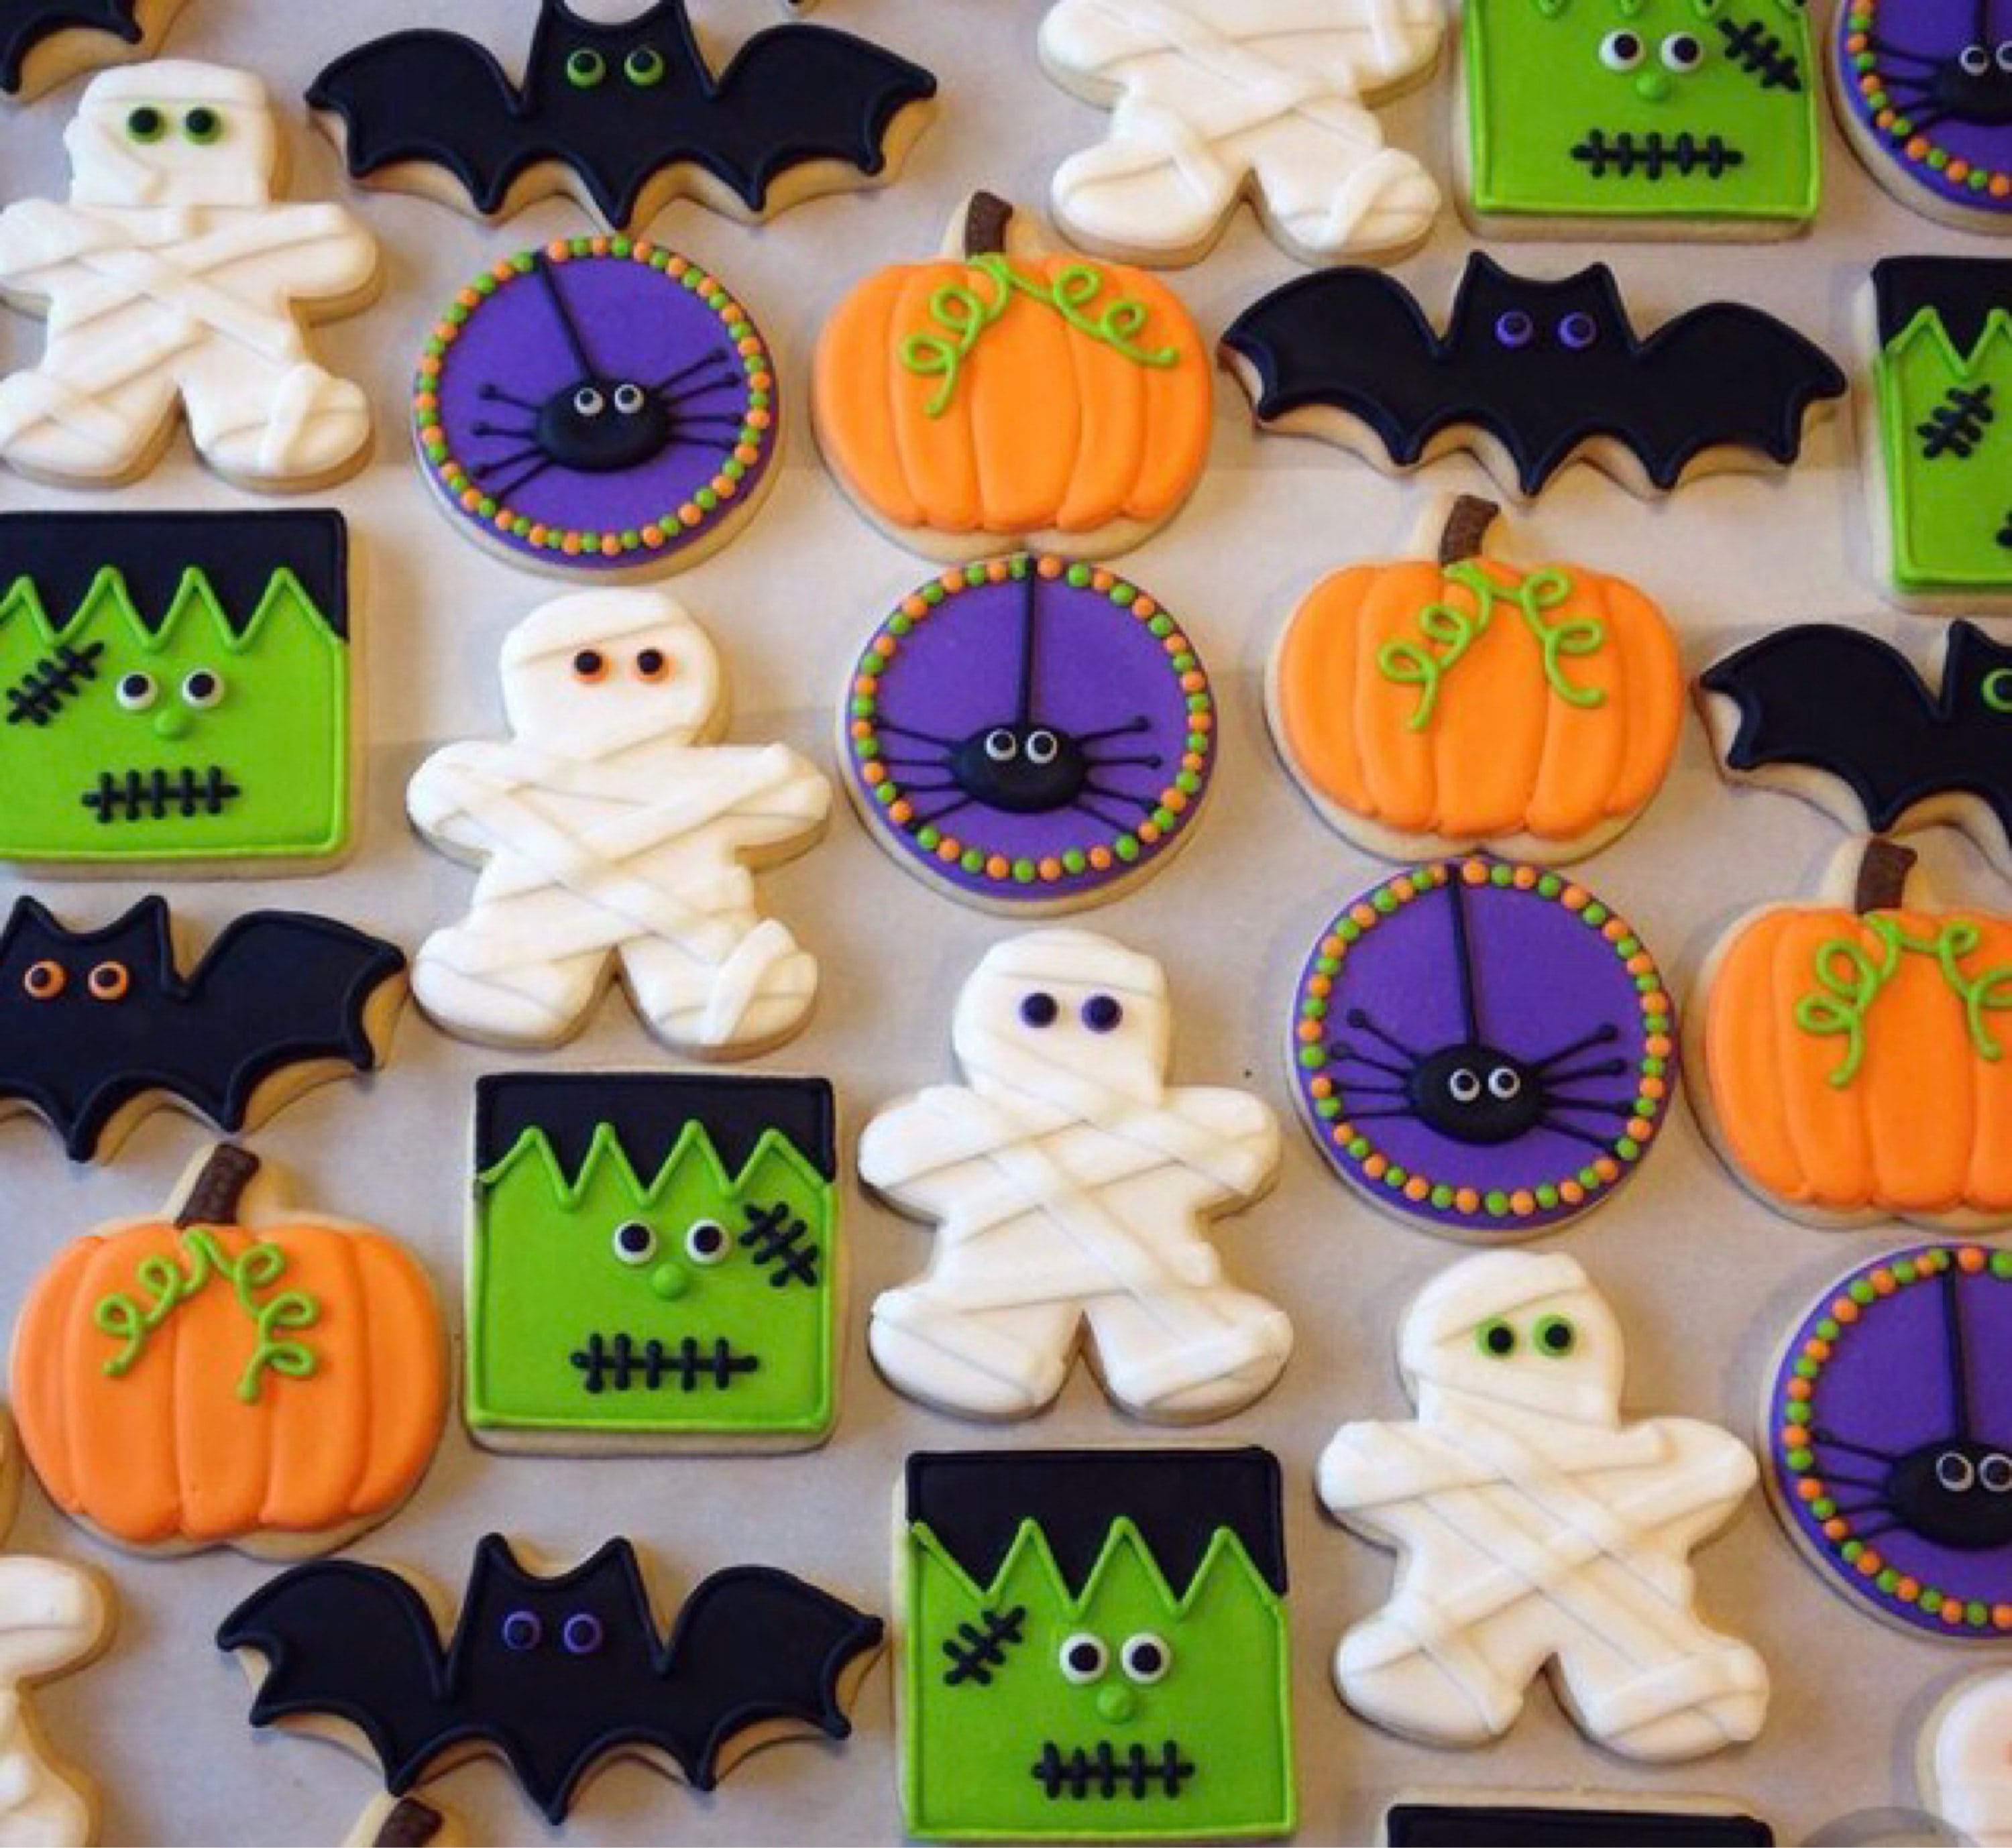 Enchanting Halloween Treat Bag Ideas For A School Classroom Party